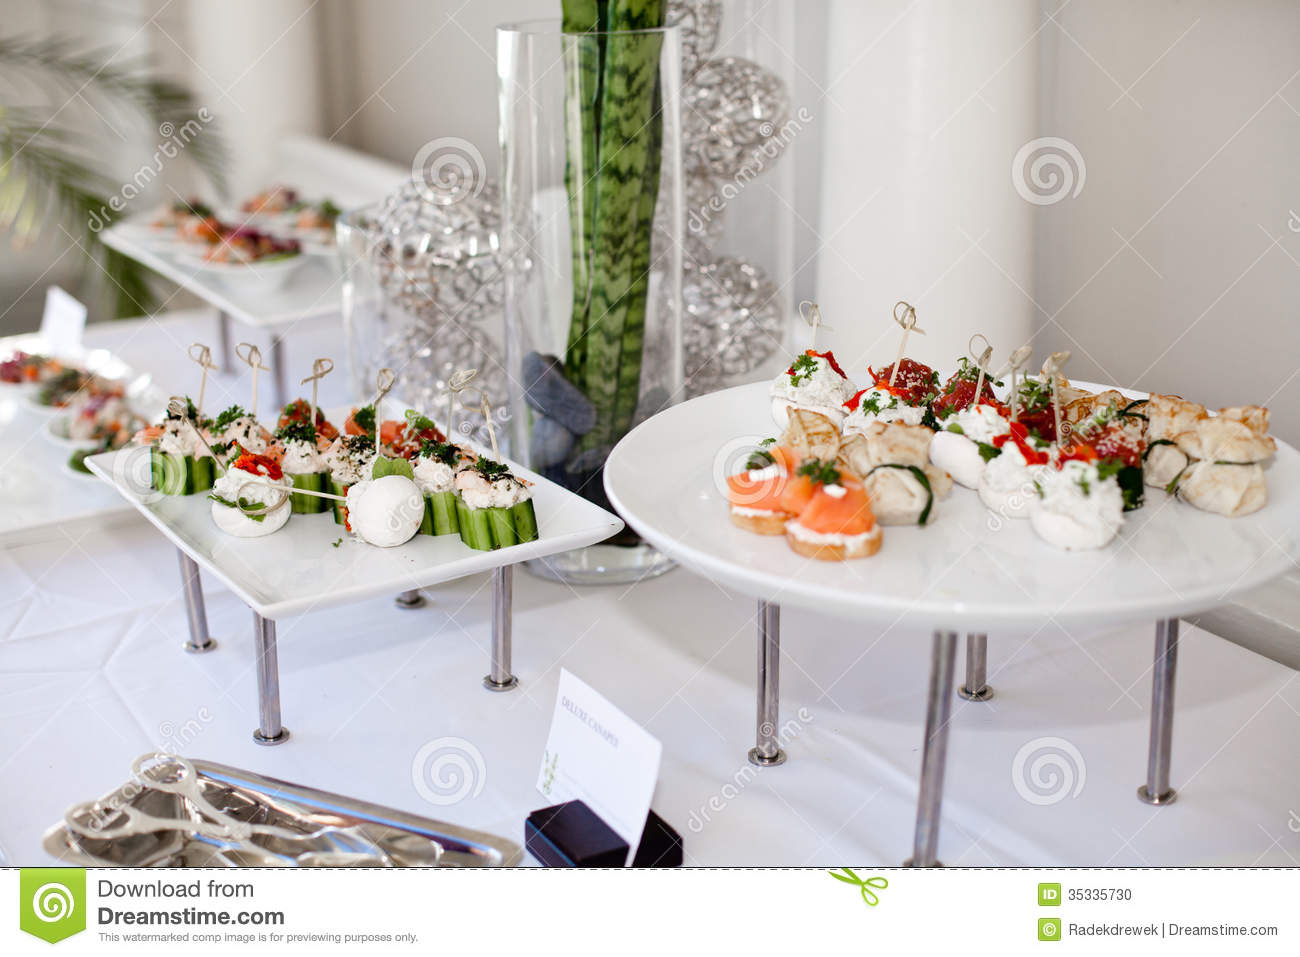 Wedding Catering Stock Photo - Image: 35335730